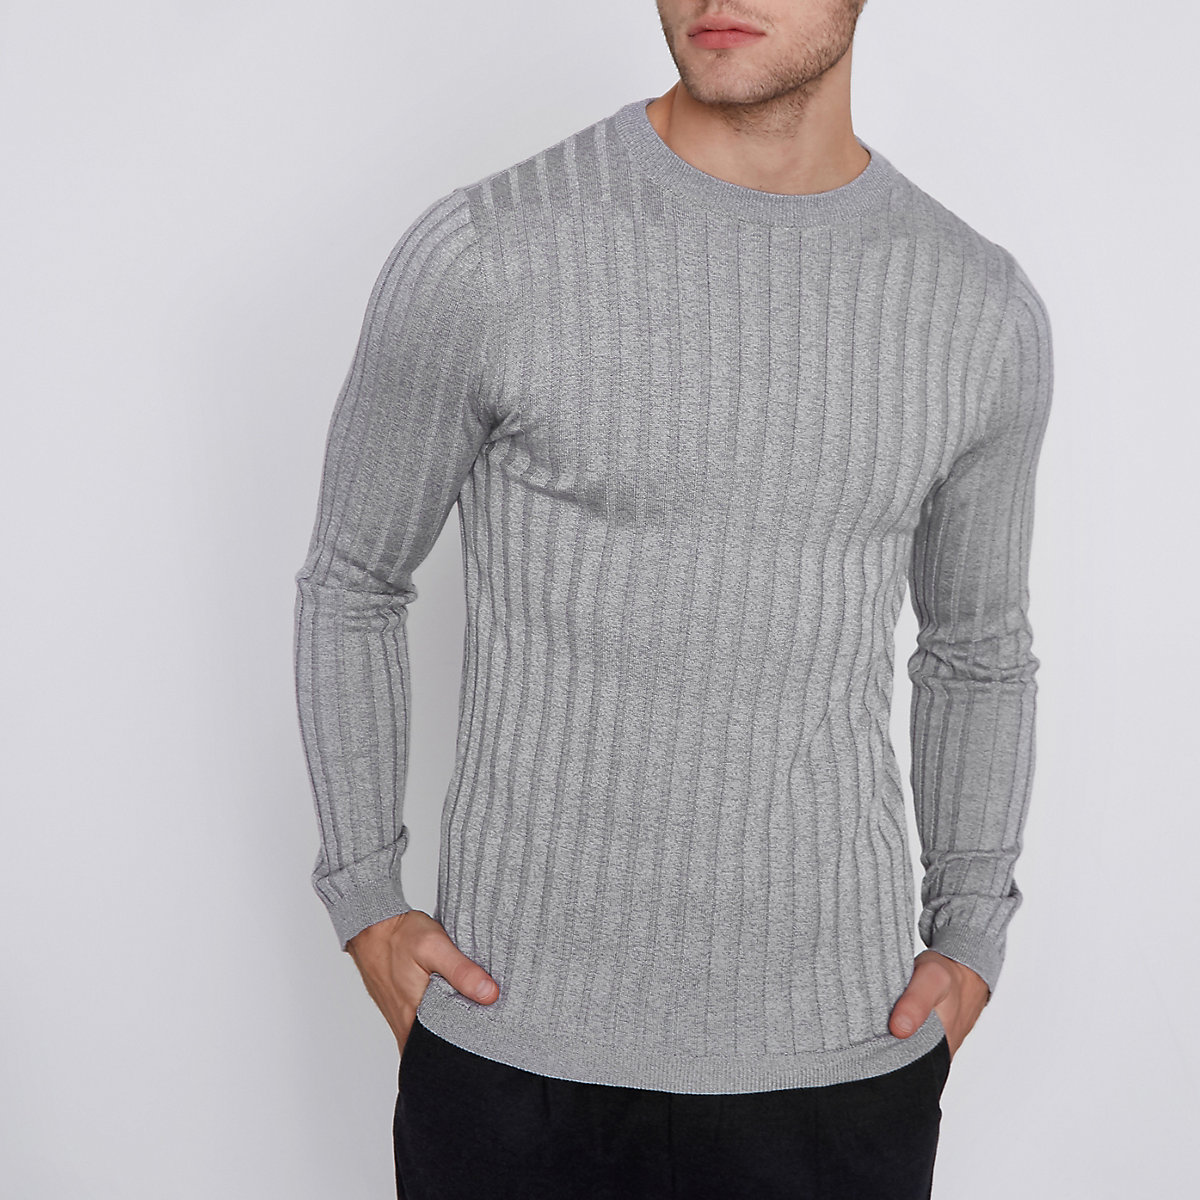 Grey rib knit muscle fit crew neck sweater